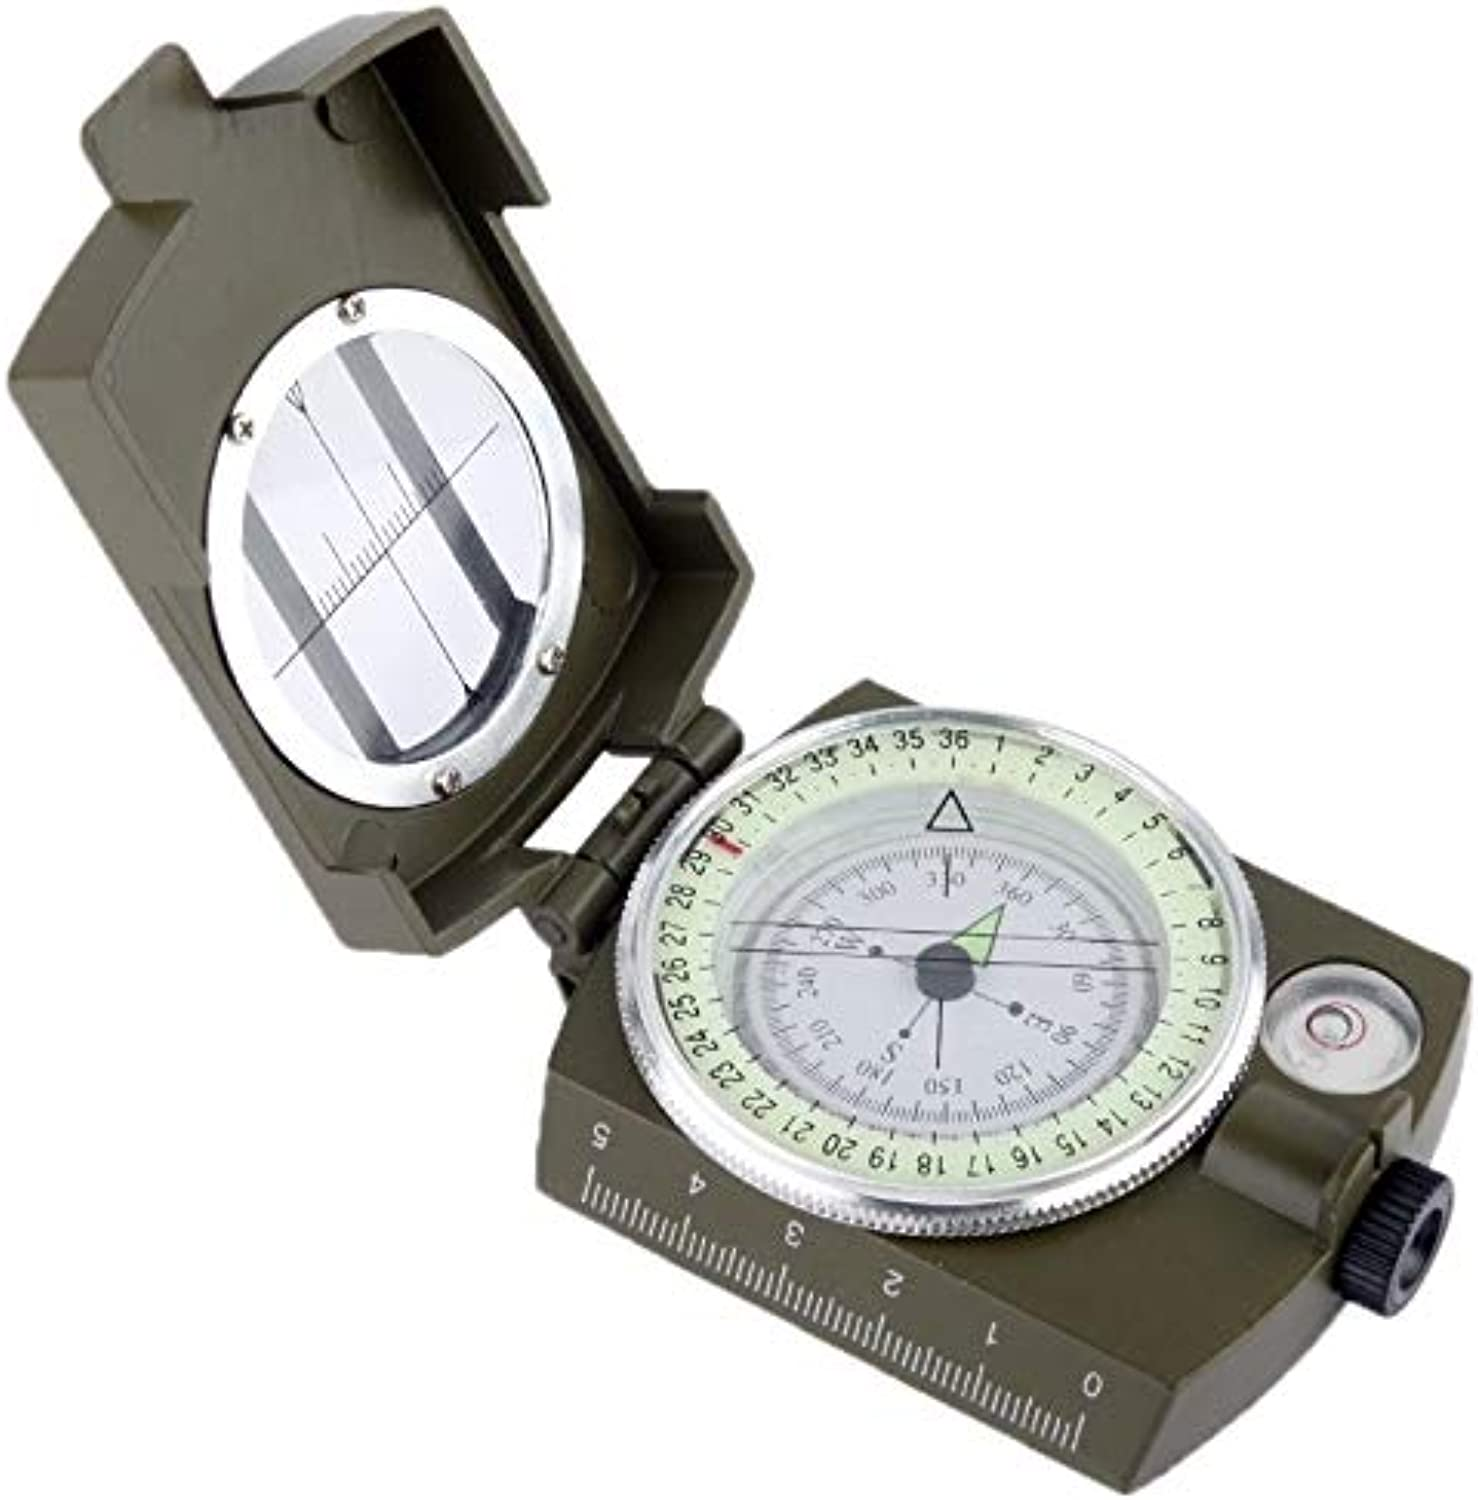 Perfect Home Professional Portable Pocket Military Army Geology Compass with Bubble Level Neck Strap Durable